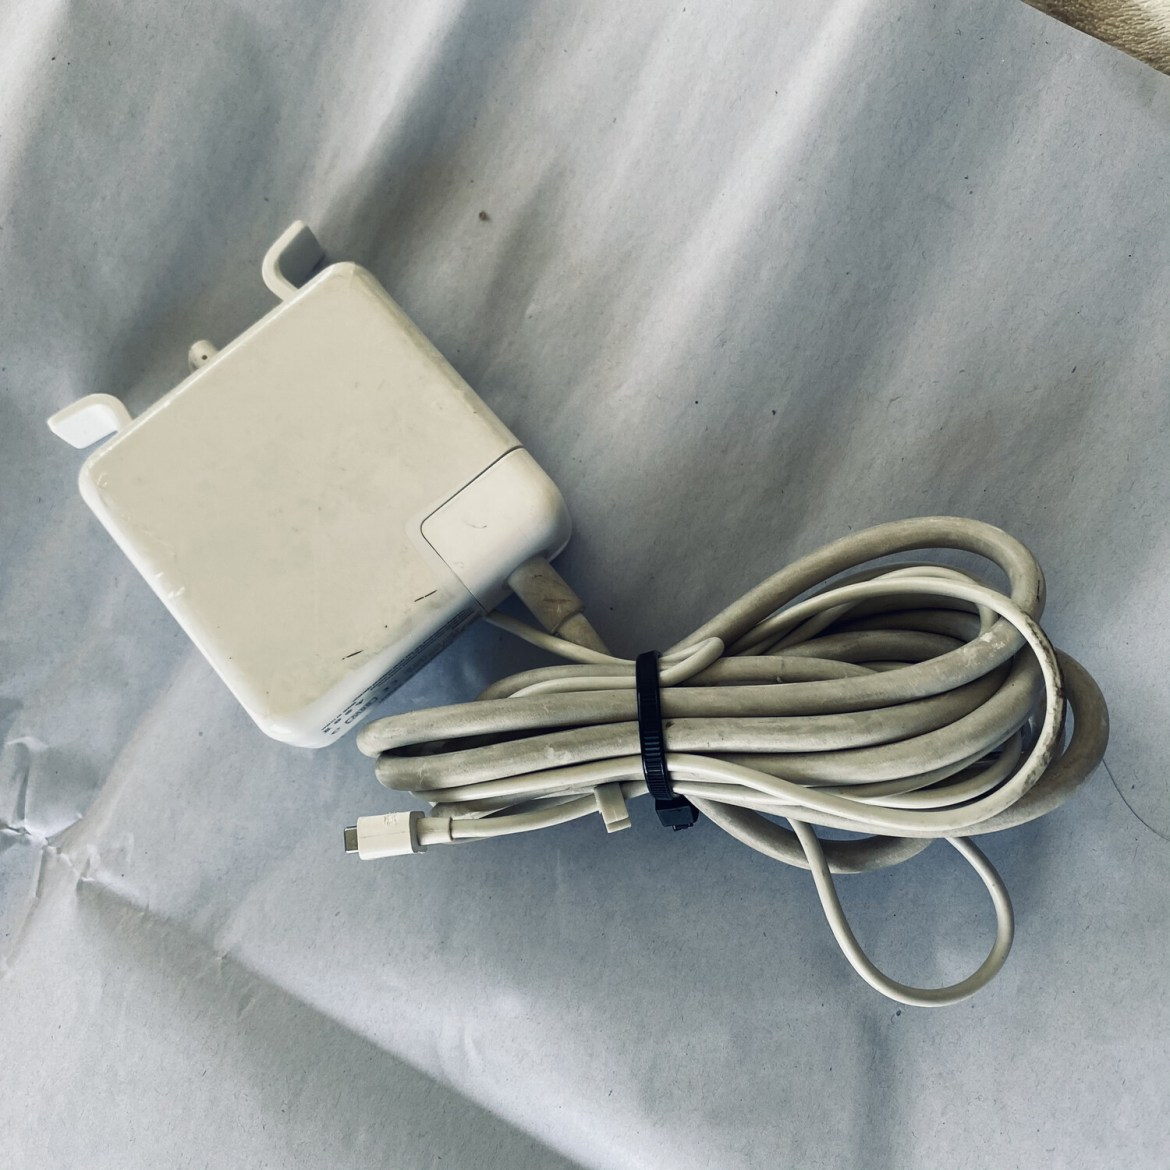 COMPUTER CHARGER REPLACEMENT AC ADAPTER MODEL #A1172 WHITE 85W